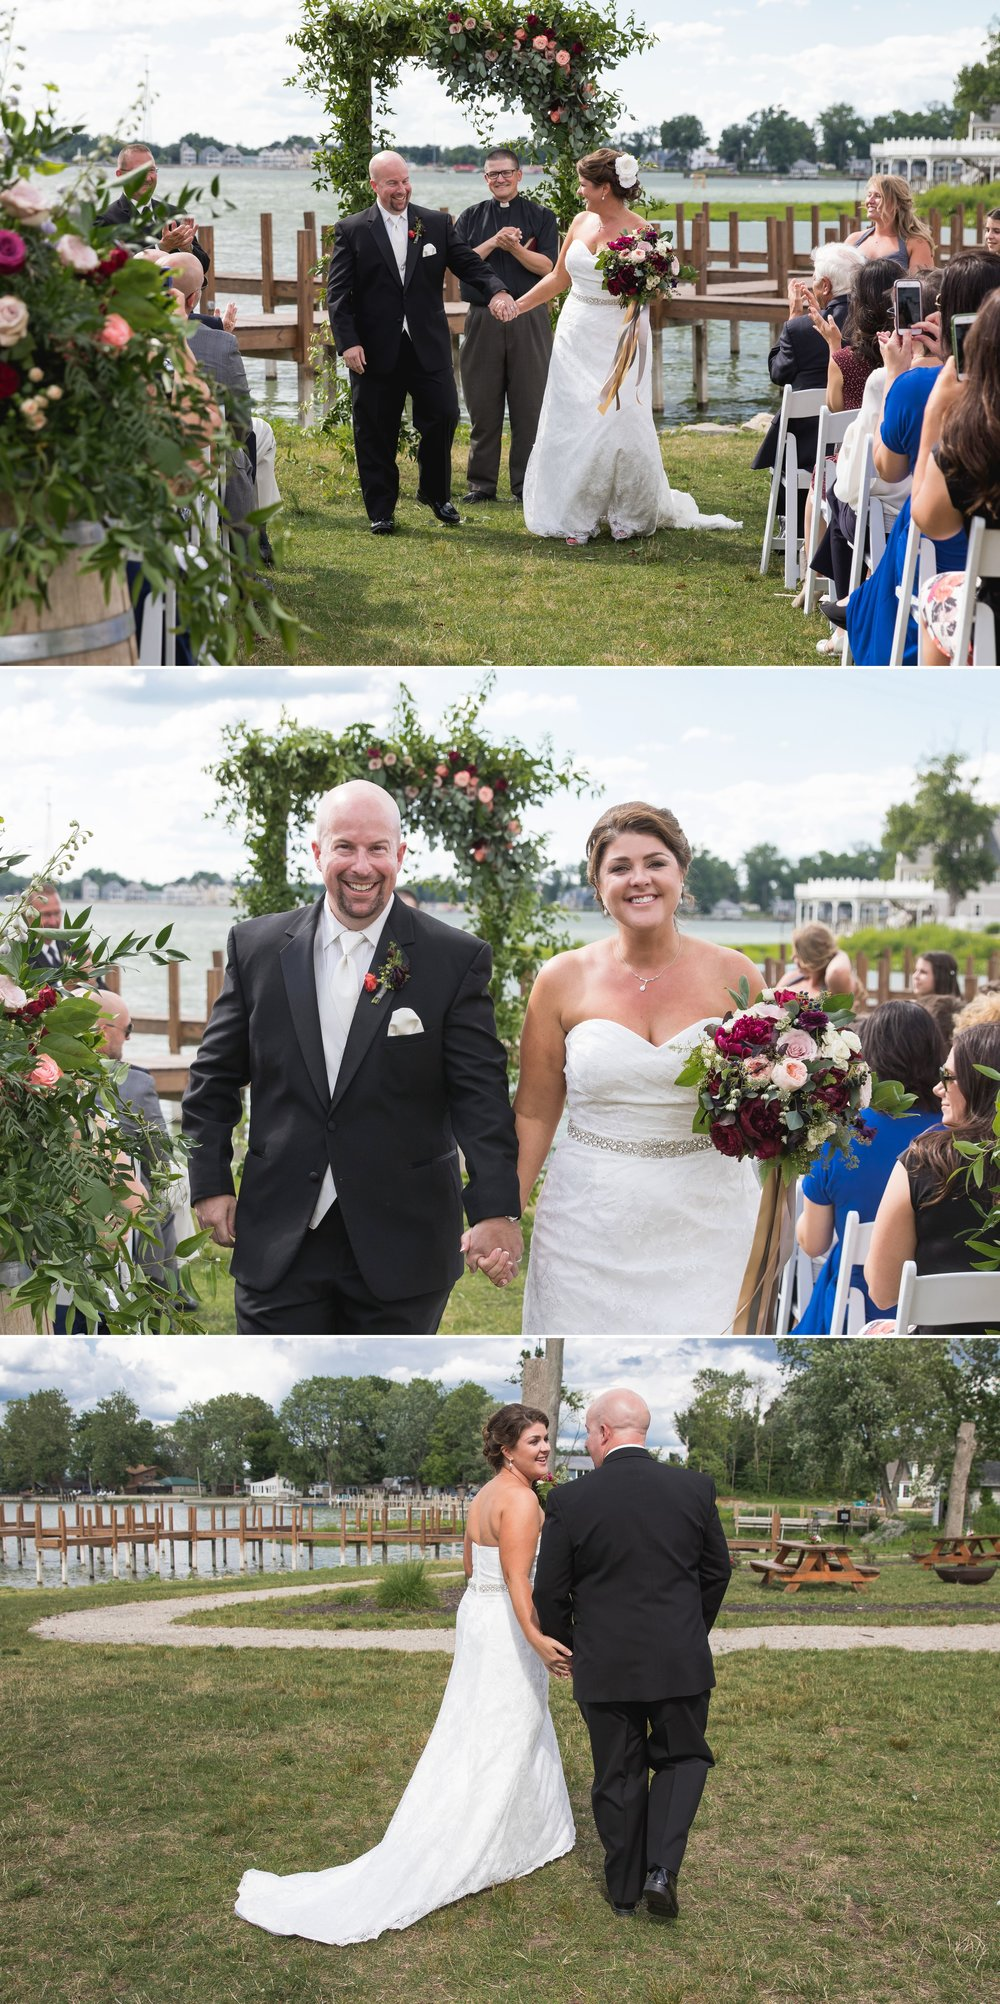 014-Buckeye-lake-winery-wedding-ceremony-columbus-ohio-wedding-photography-muschlitz-photography-04.JPG